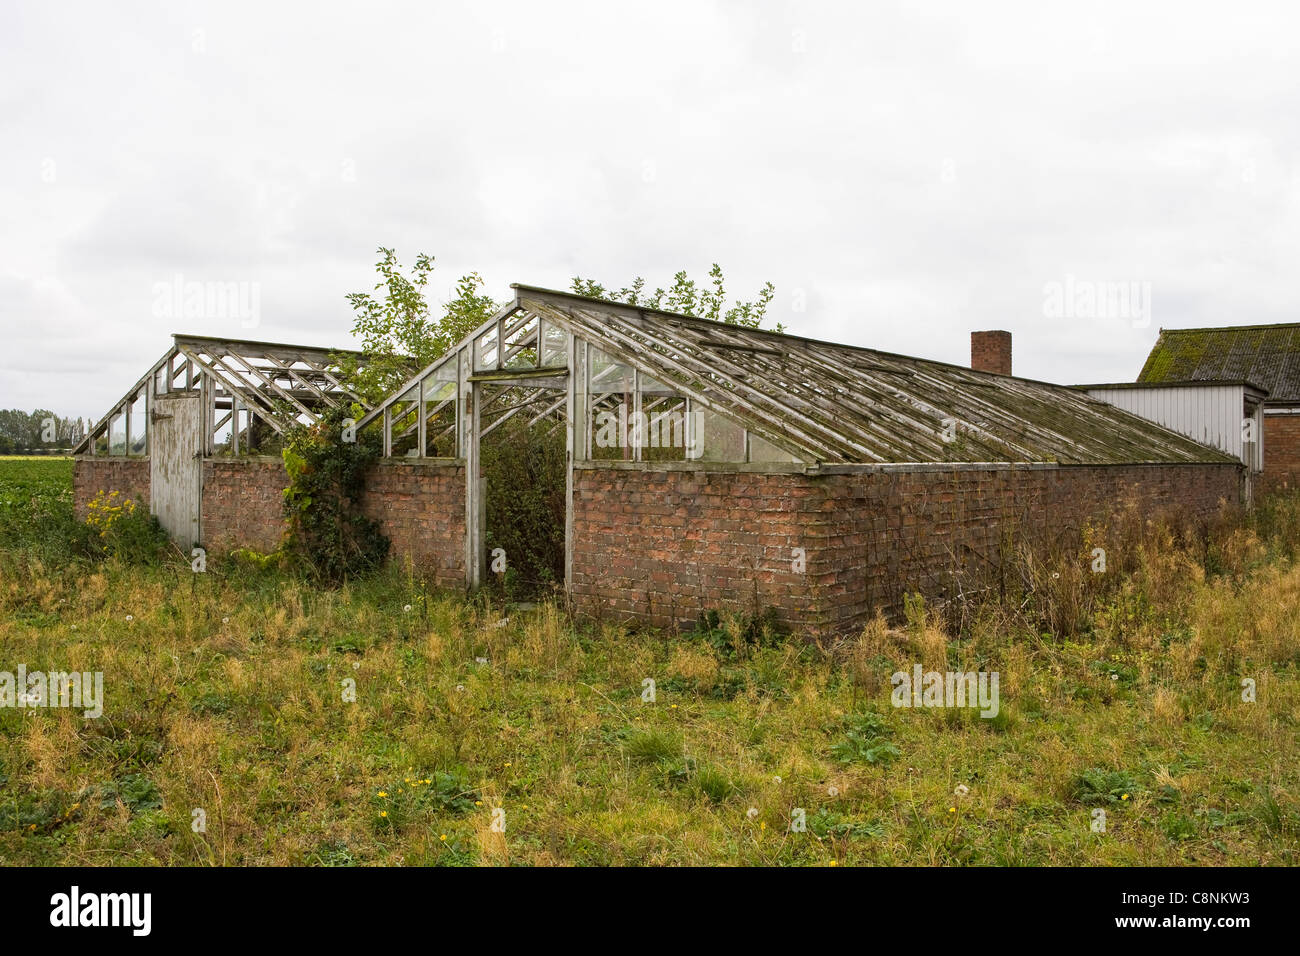 Redundant Greenhouse - Stock Image